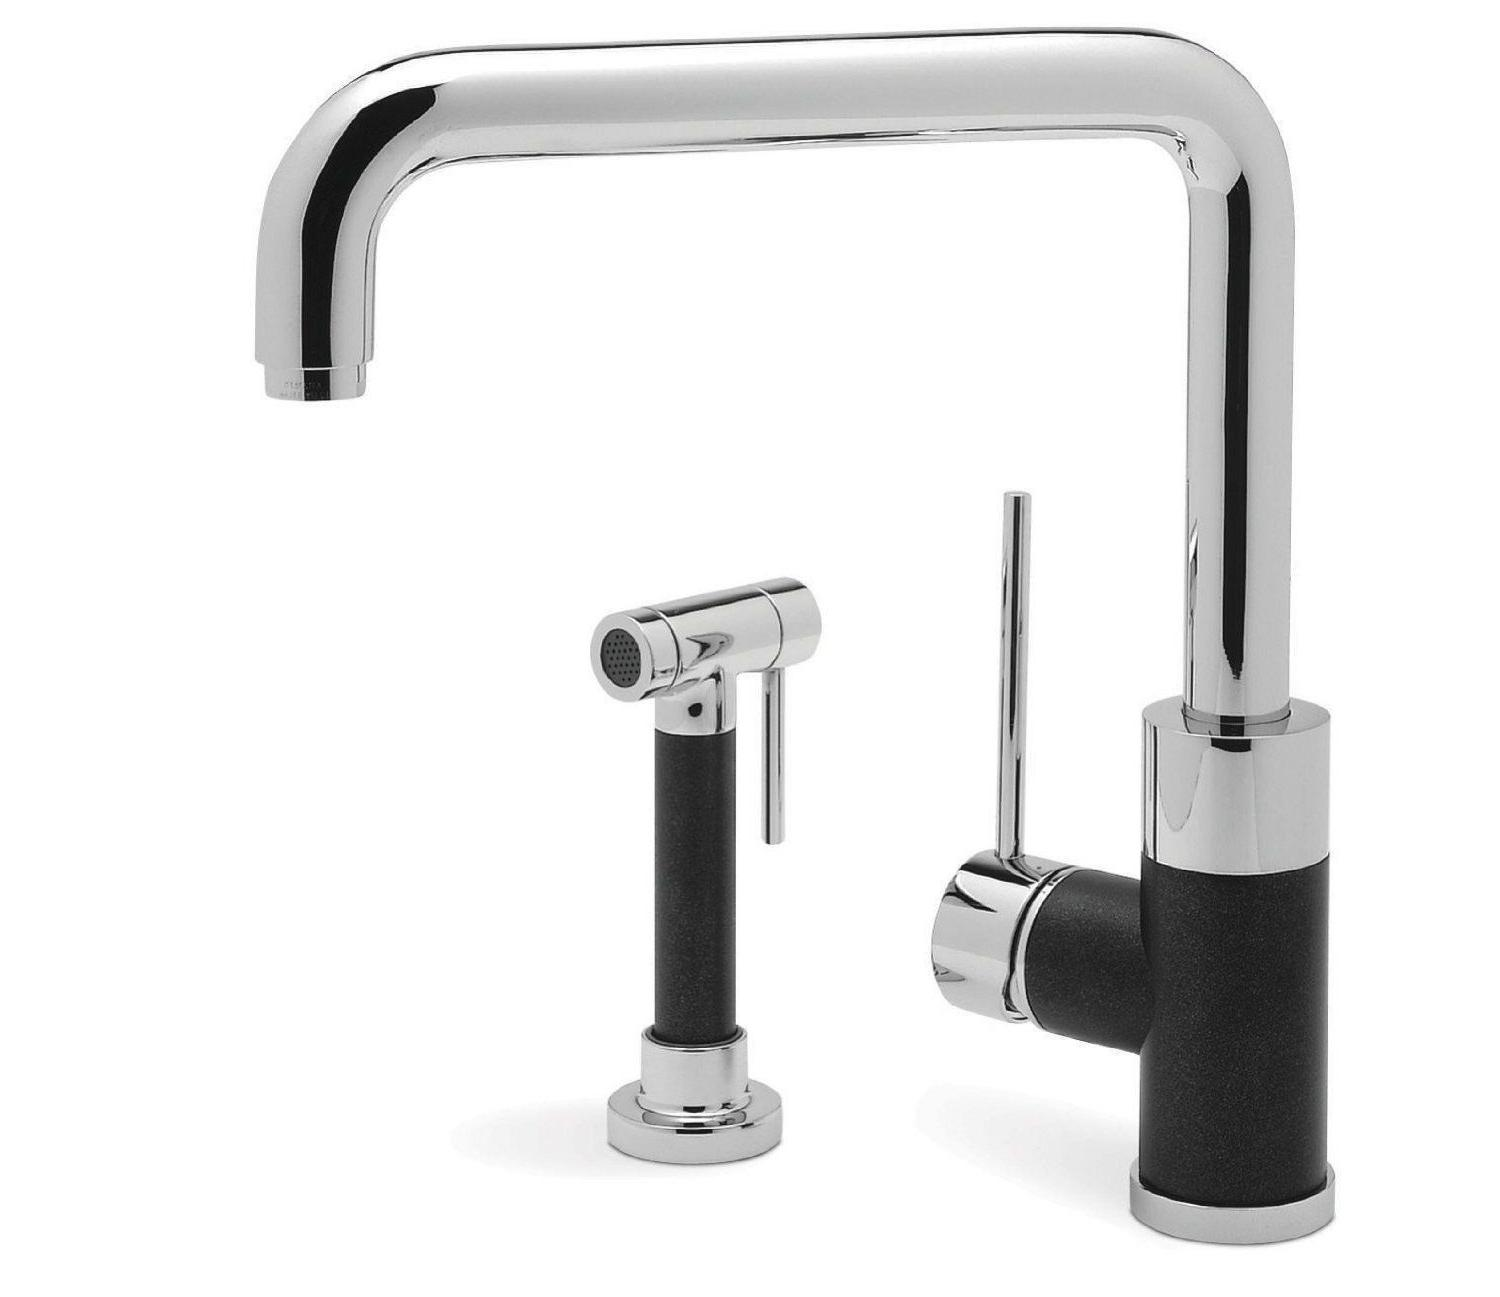 Blanco Purus I 440602 1-Handle Kitchen Faucet Side Spray Chr